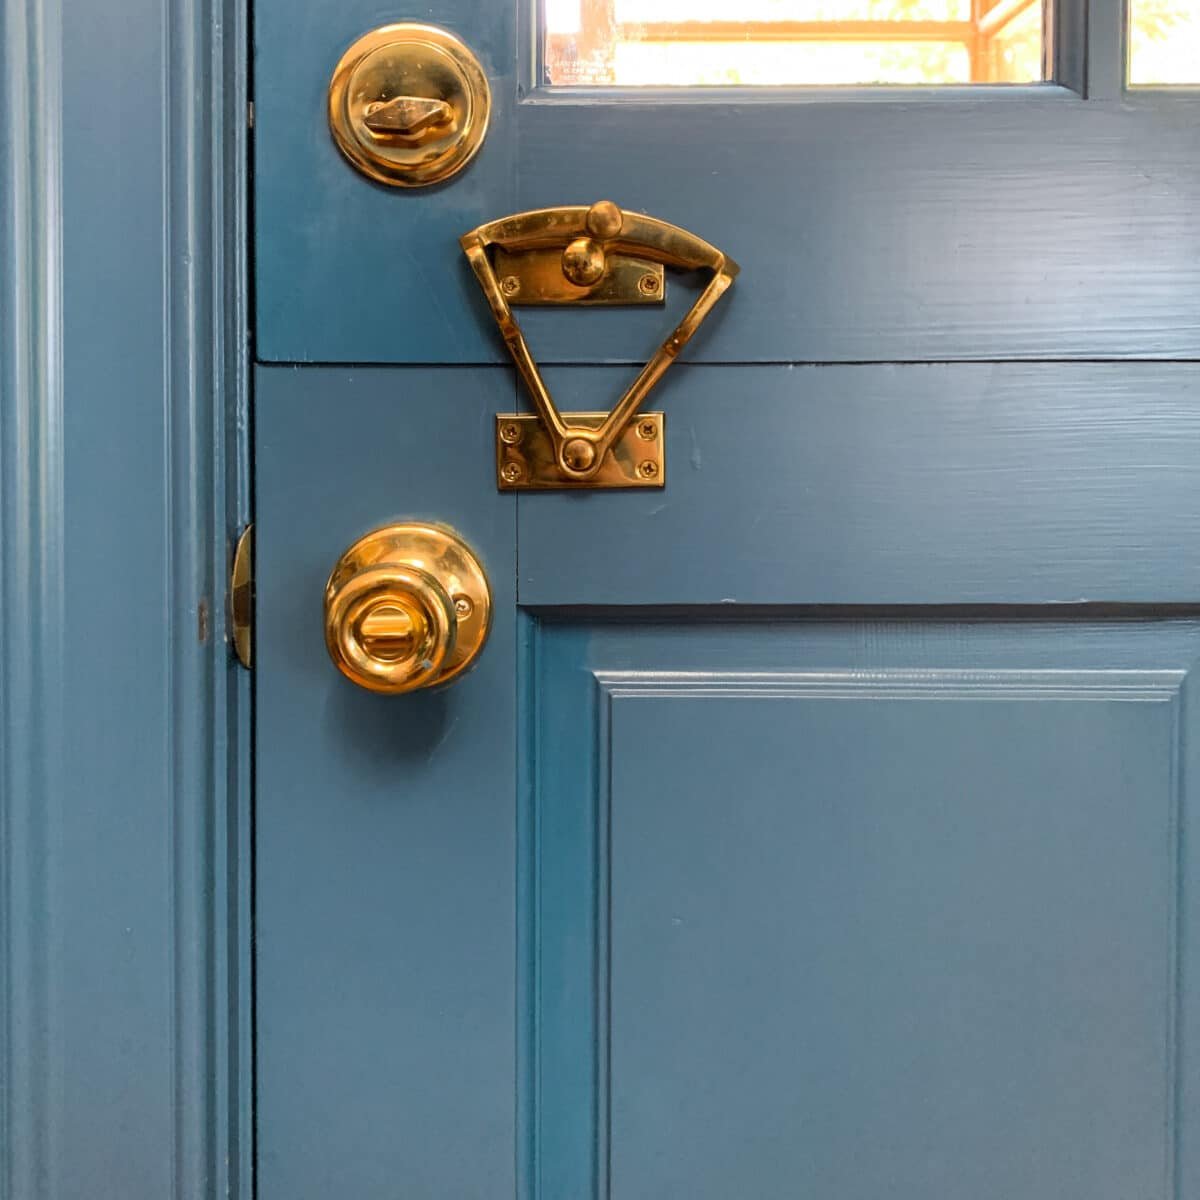 Here is the brass/gold dutch door hardware closed and in the locked position.